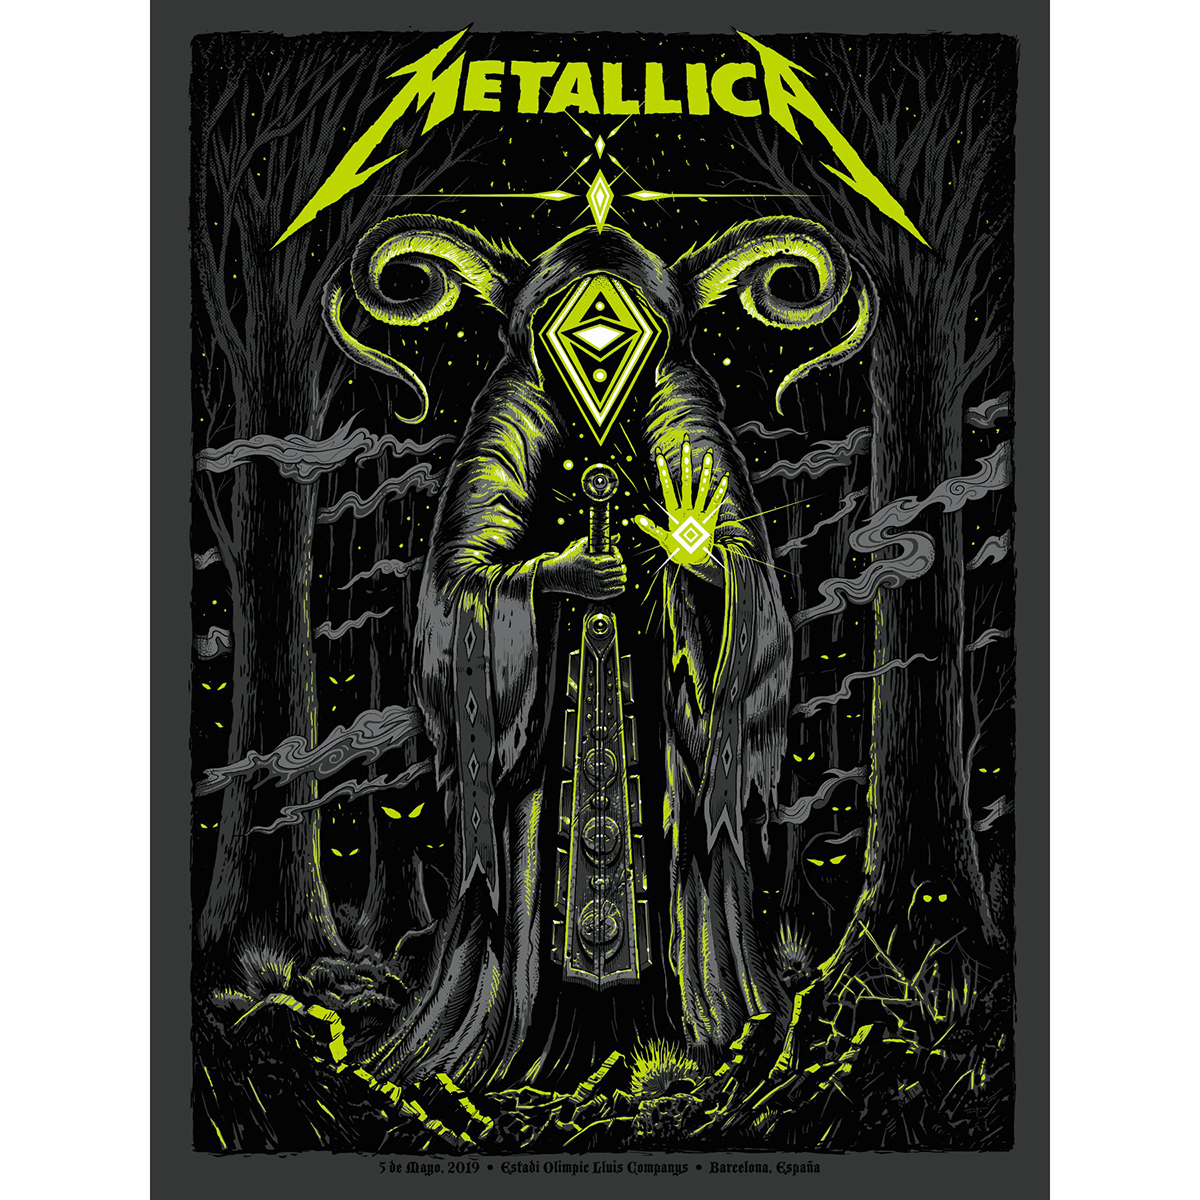 Barcelona May 5th – Limited Edition Numbered Screen Printed Event Poster - Metallica